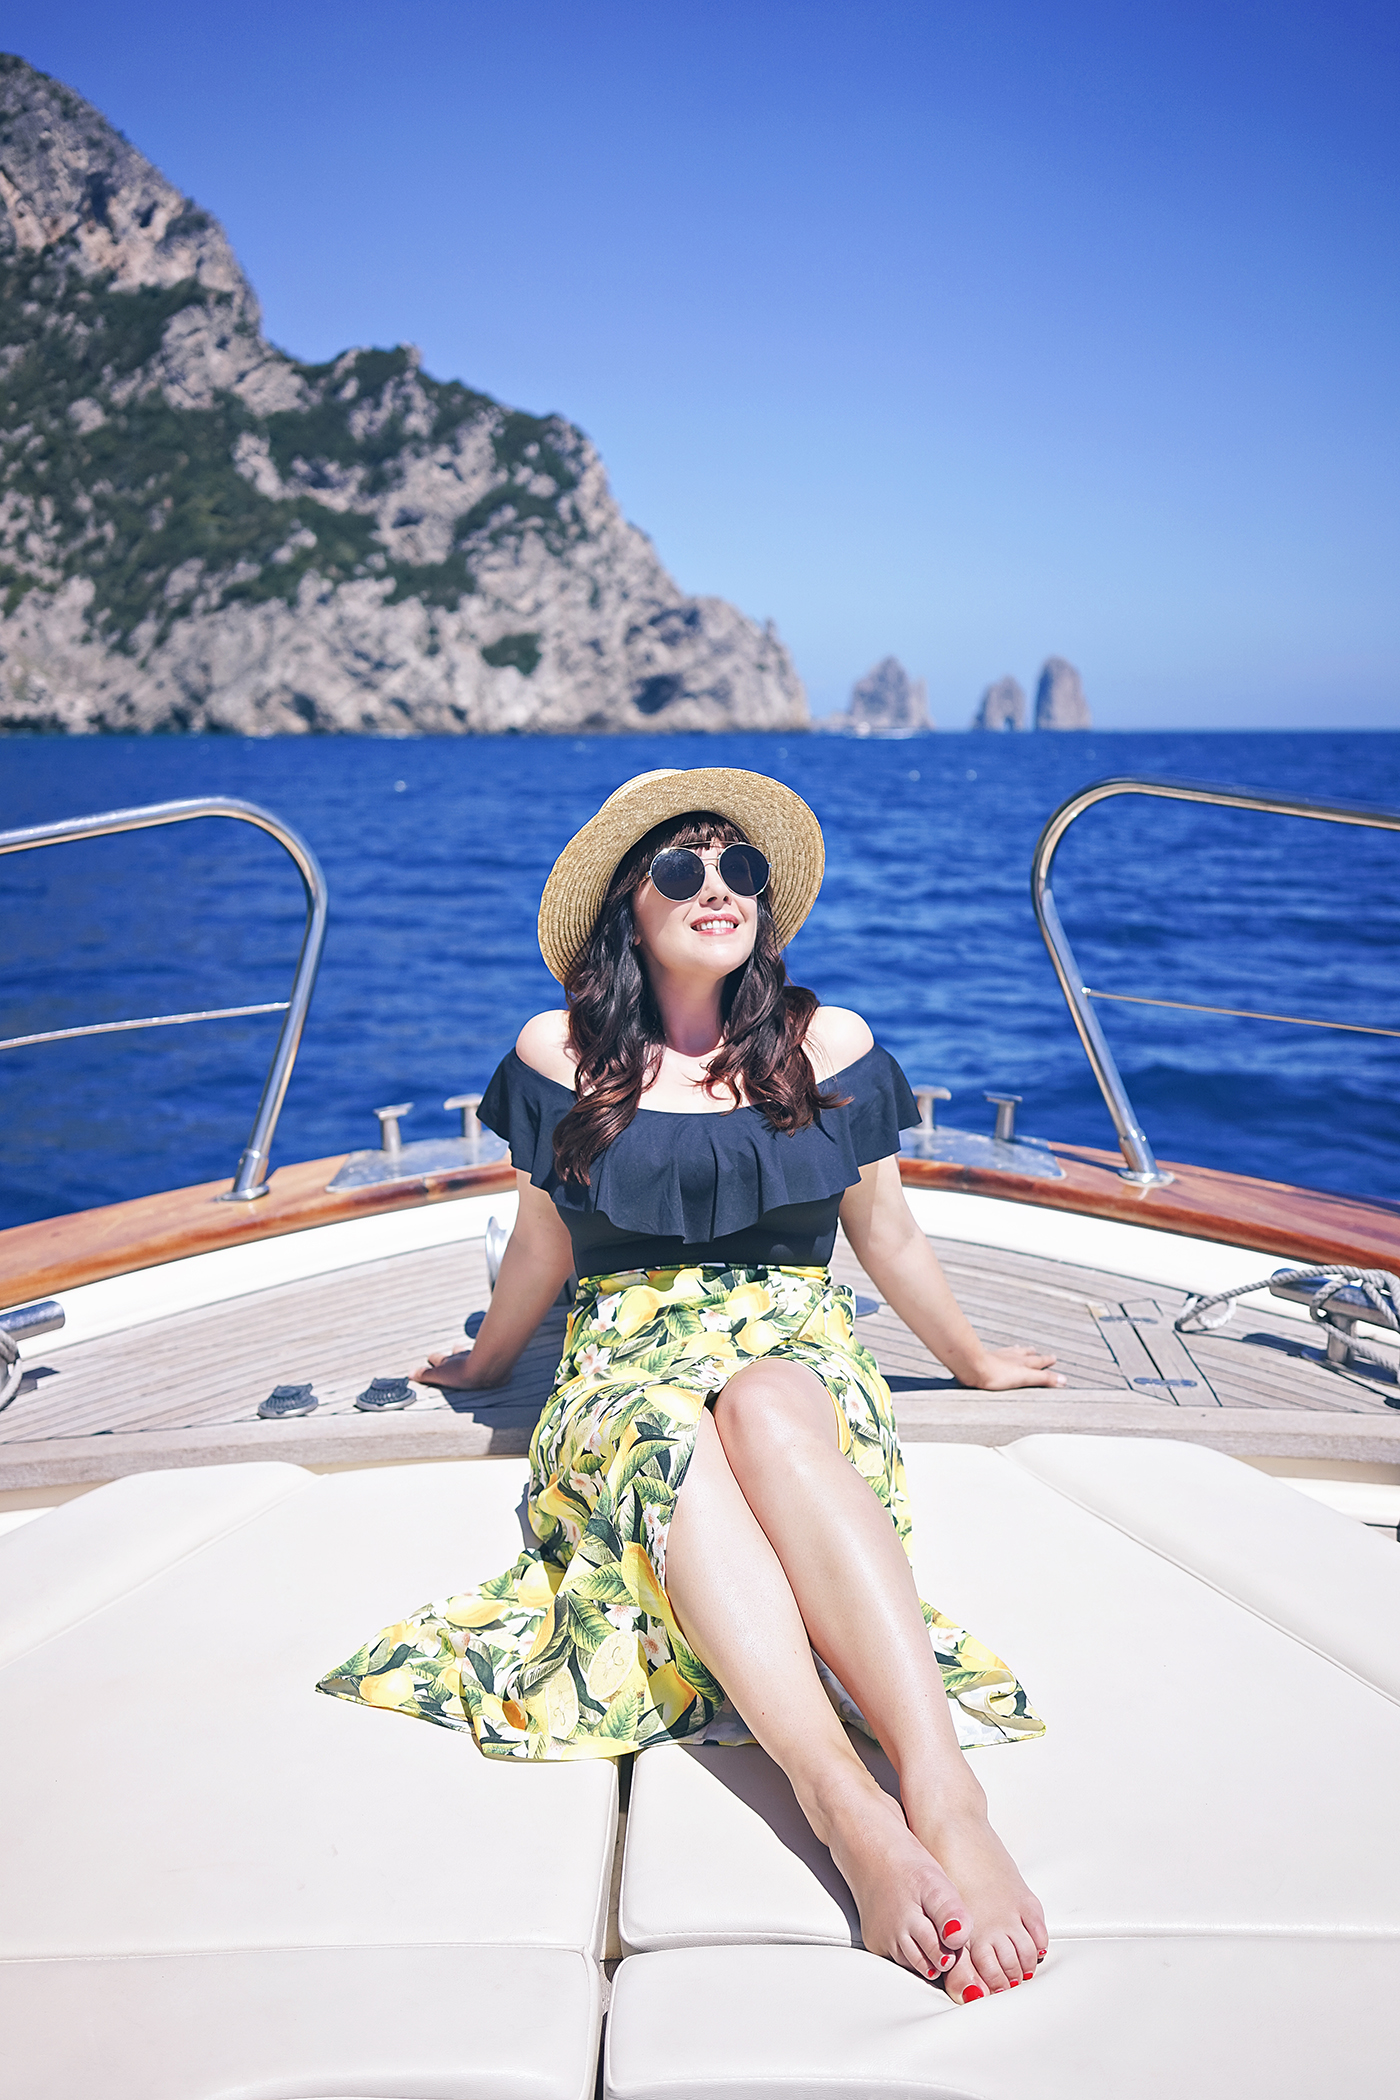 The Best Way to See Capri